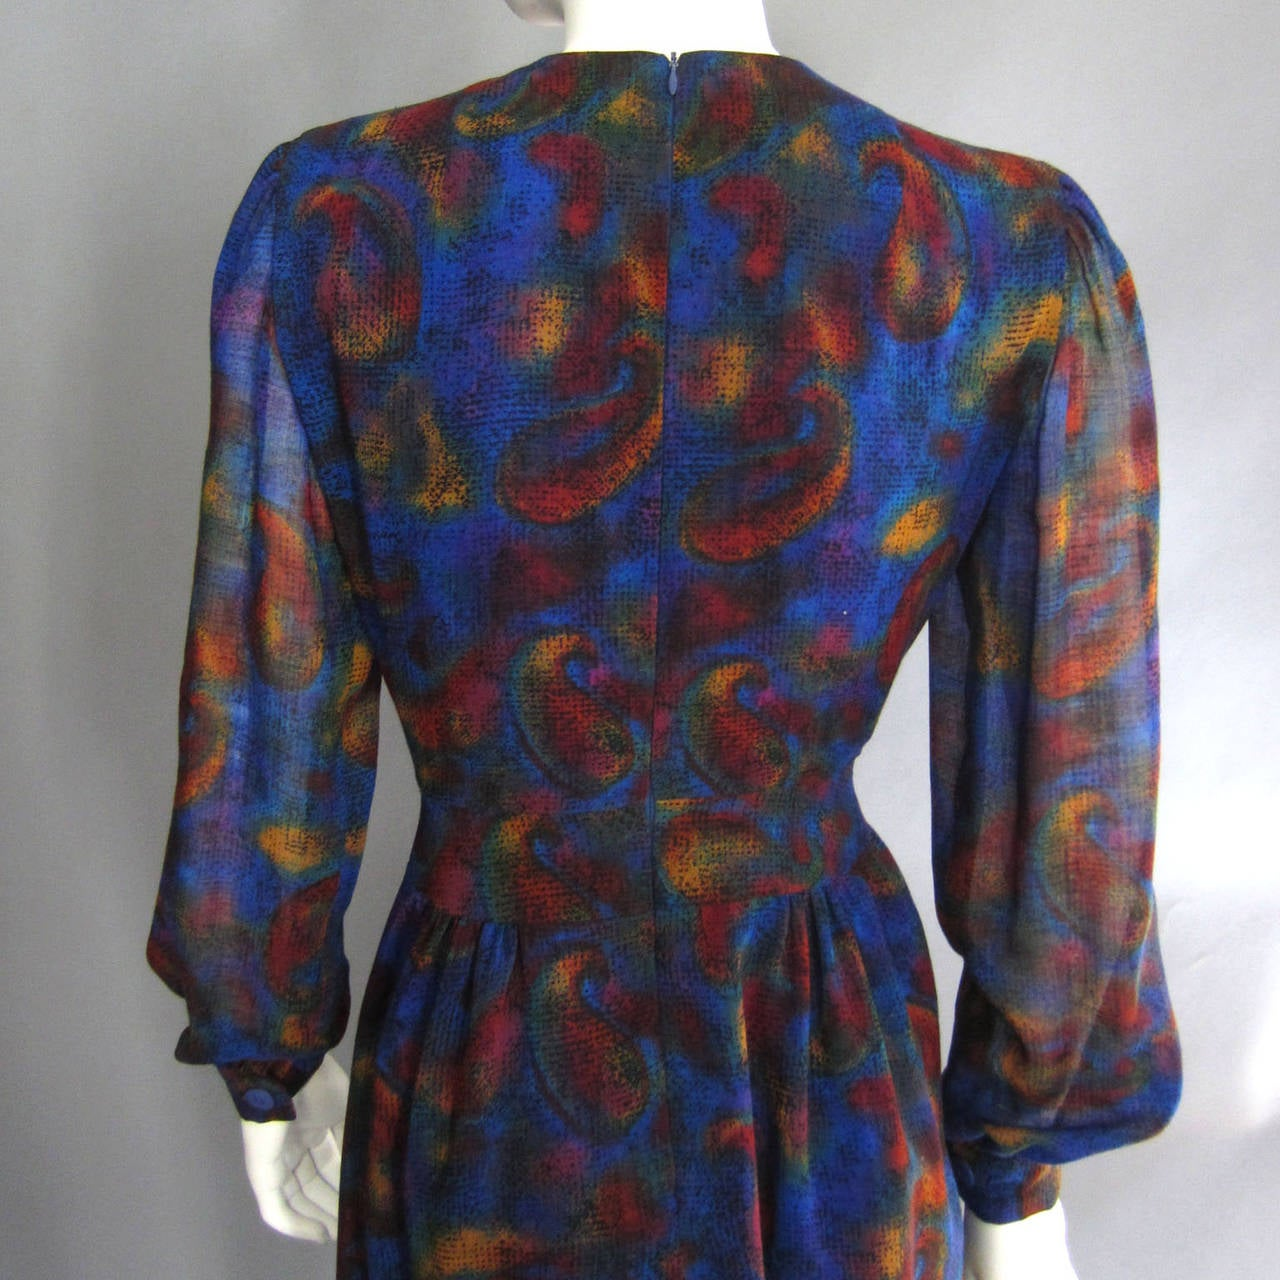 PAULINE TRIGERE Paisley Print Cocktail Dress For Sale 2